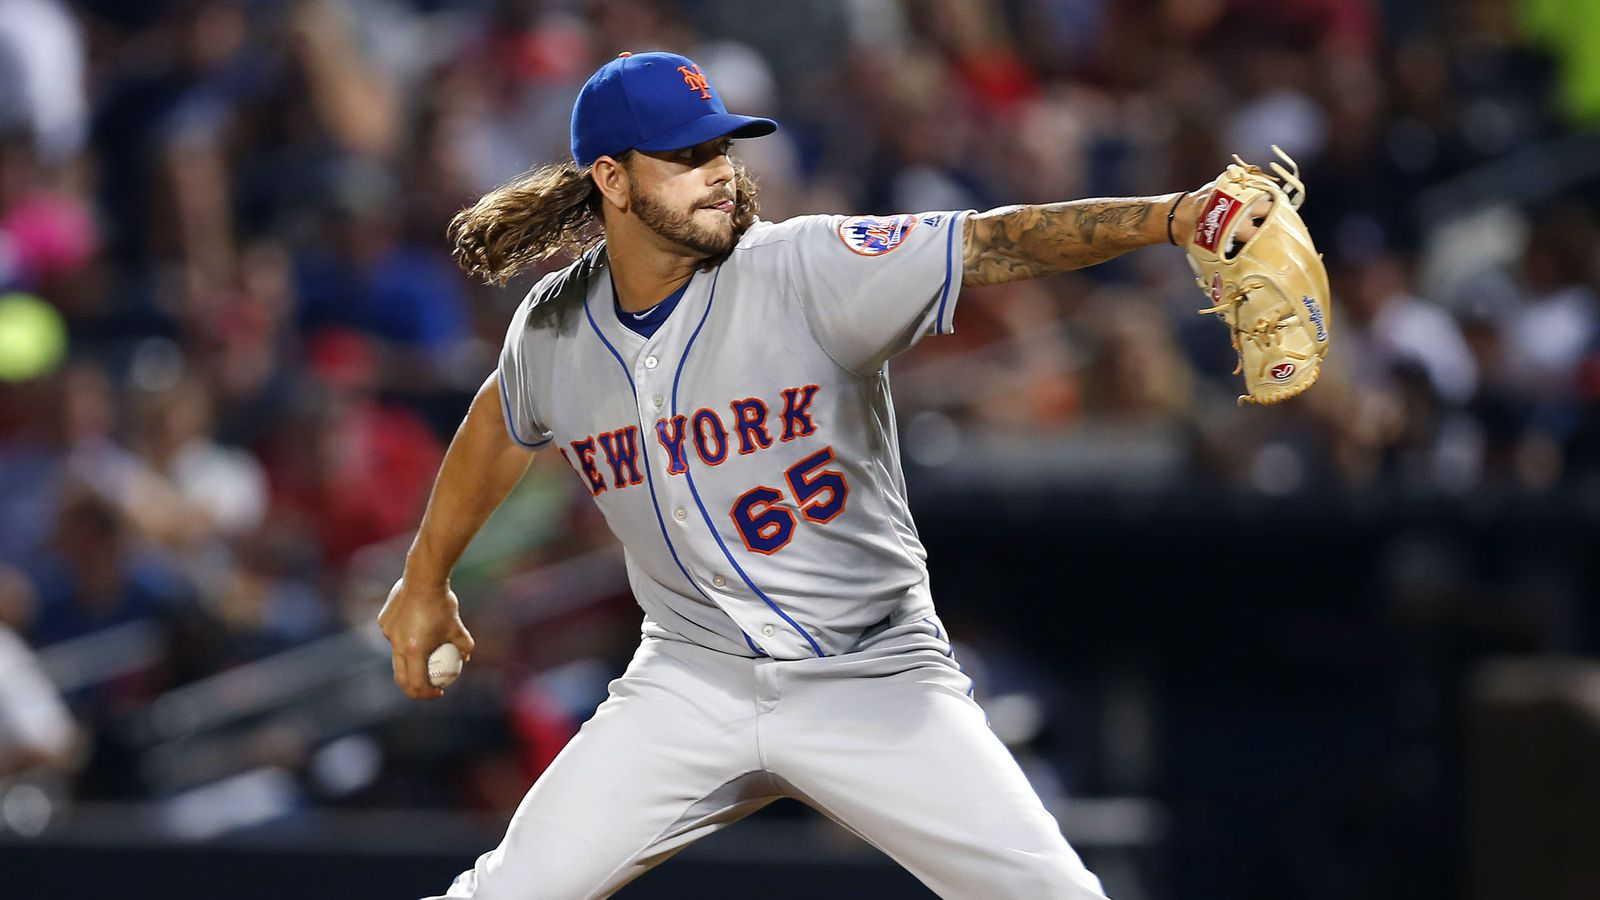 Robert Gsellman: What happens next? - Minor League Ball